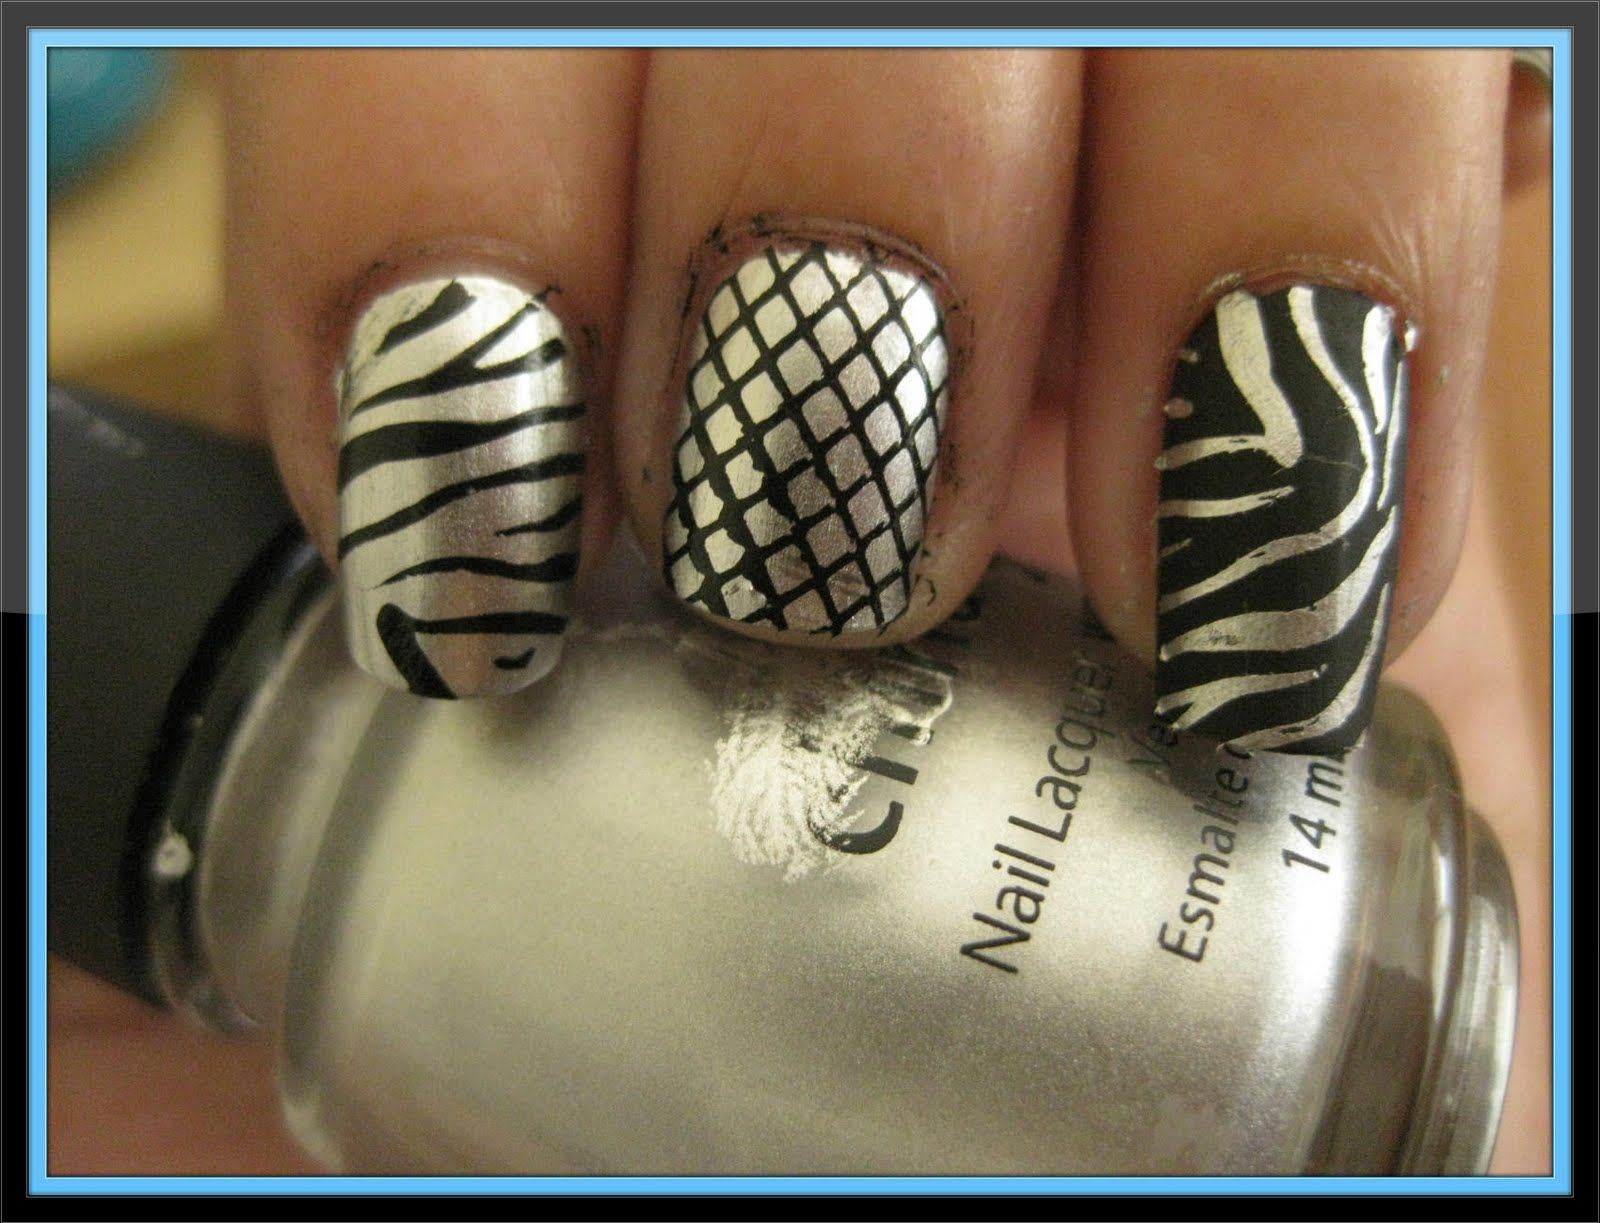 From Left To Right Cg Millennium With Black Zebra Cg Millennium With Black Fishnet M57 Orly Matte Vinyl With Cg Millennium Nail Designs Nail Polish Manicure